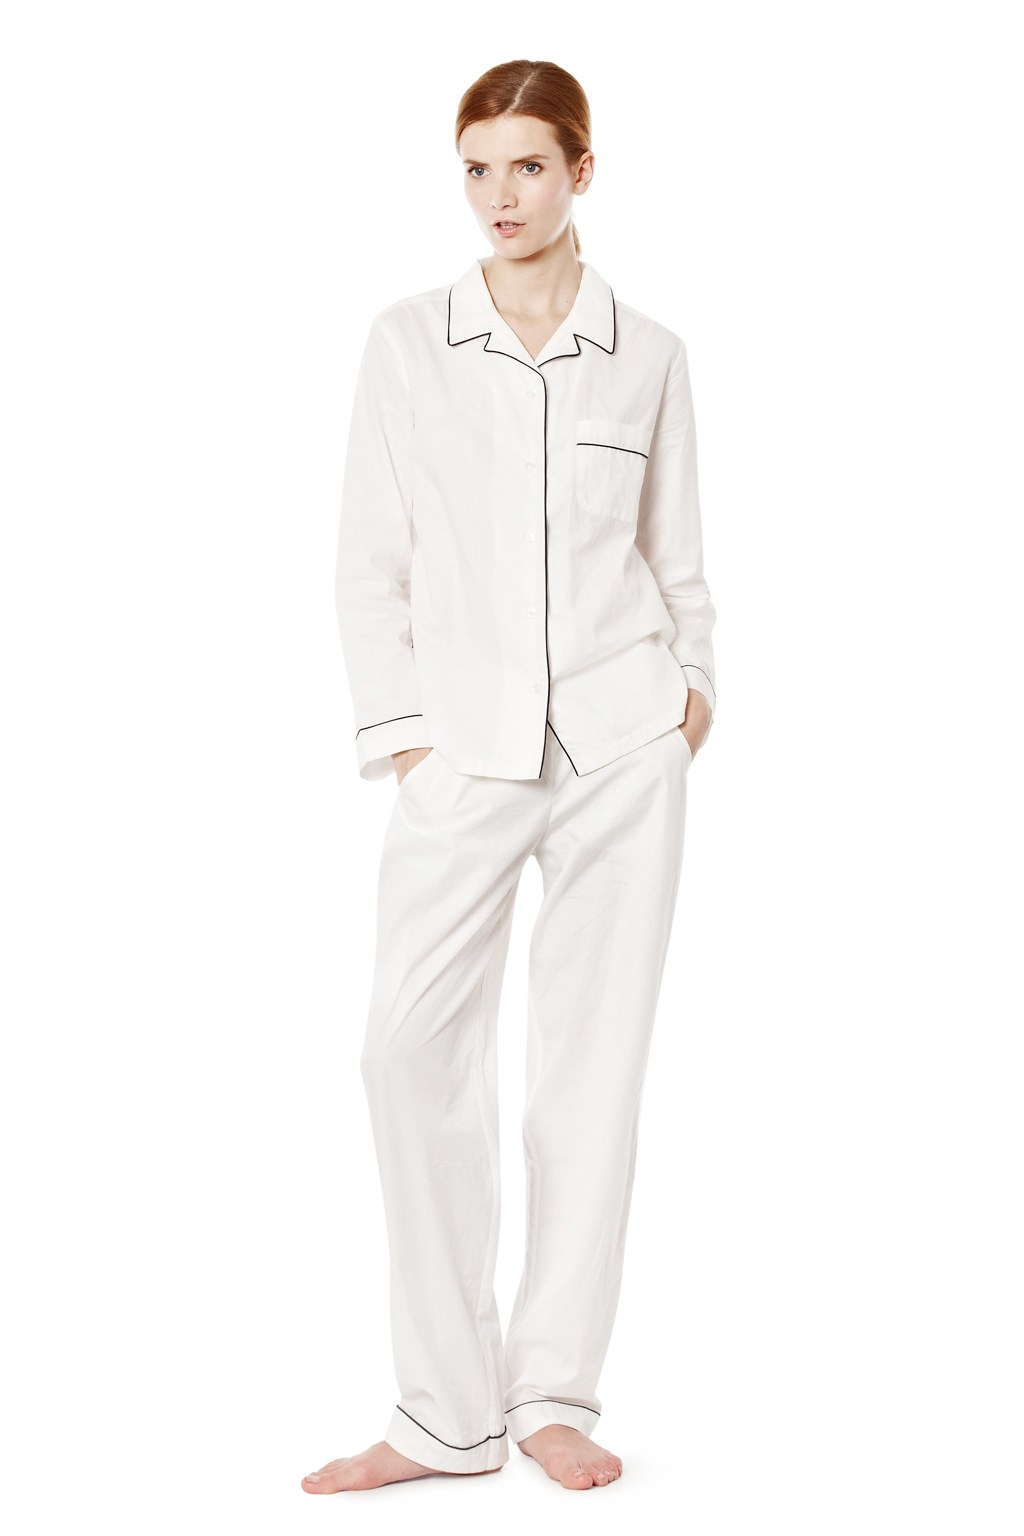 Find great deals on eBay for white pajamas. Shop with confidence.